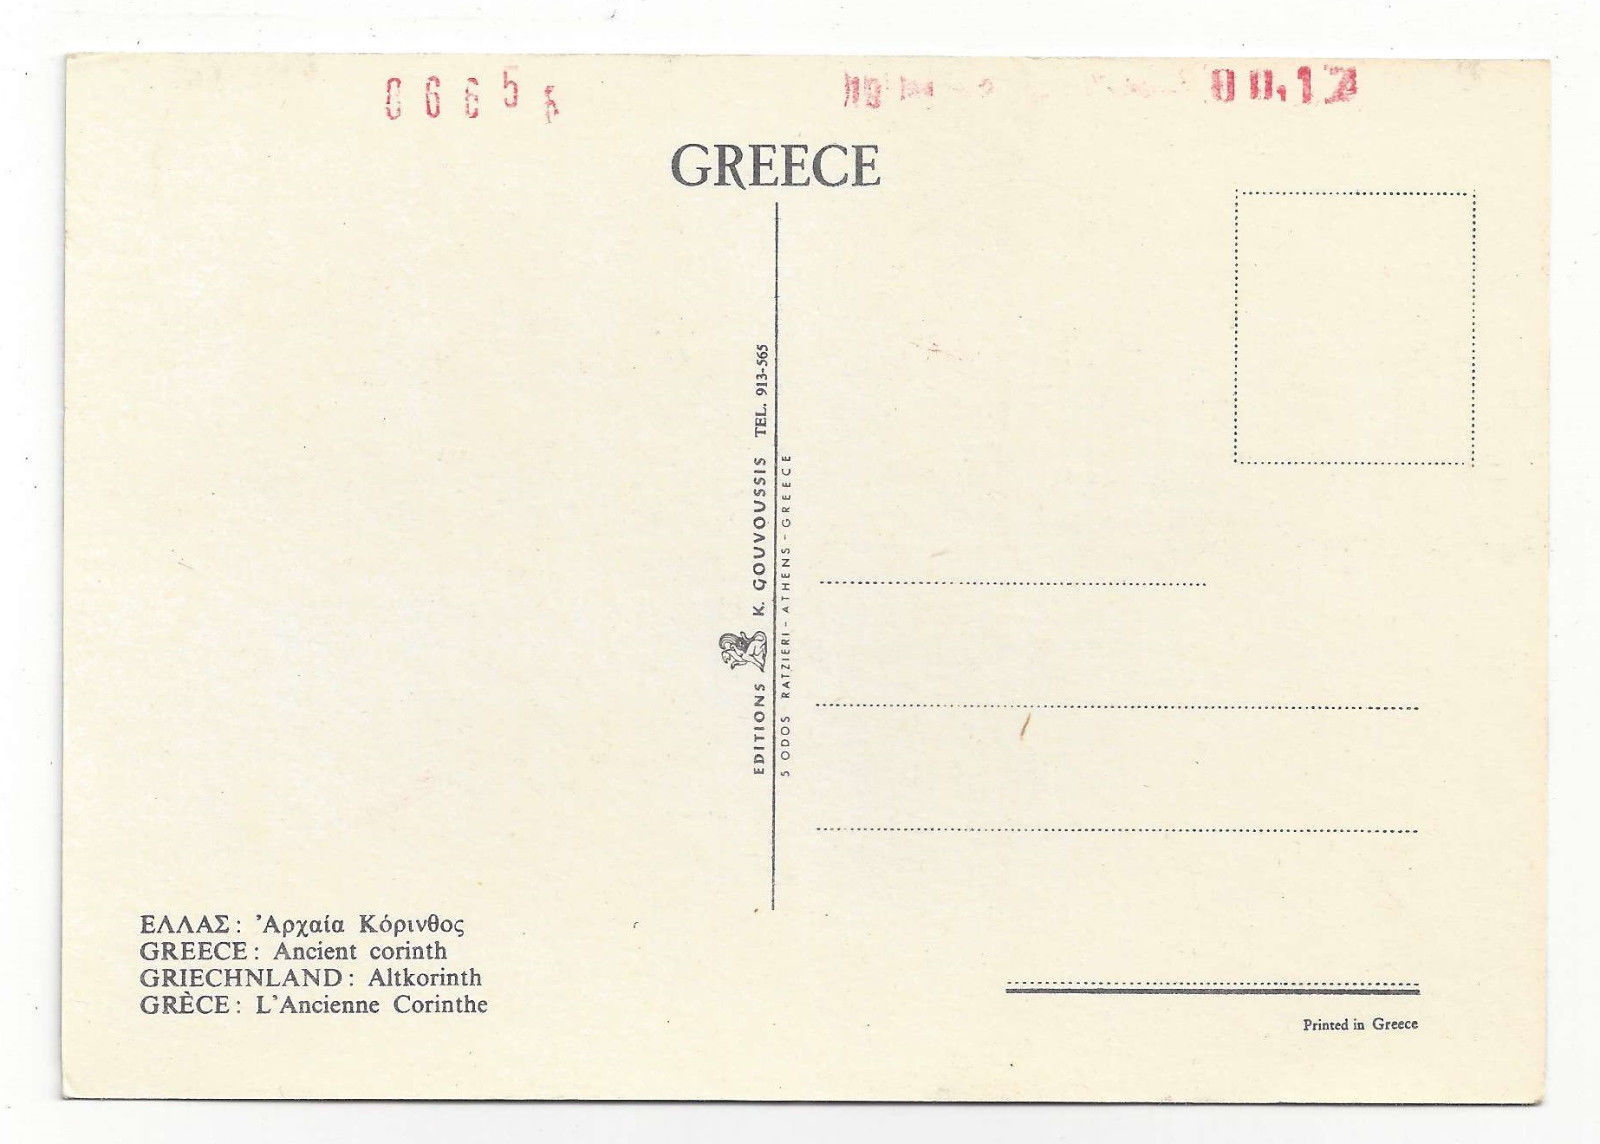 Greece Ancient Corinth Multiview 4 Views Ruins Temples Vtg Postcard 4X6